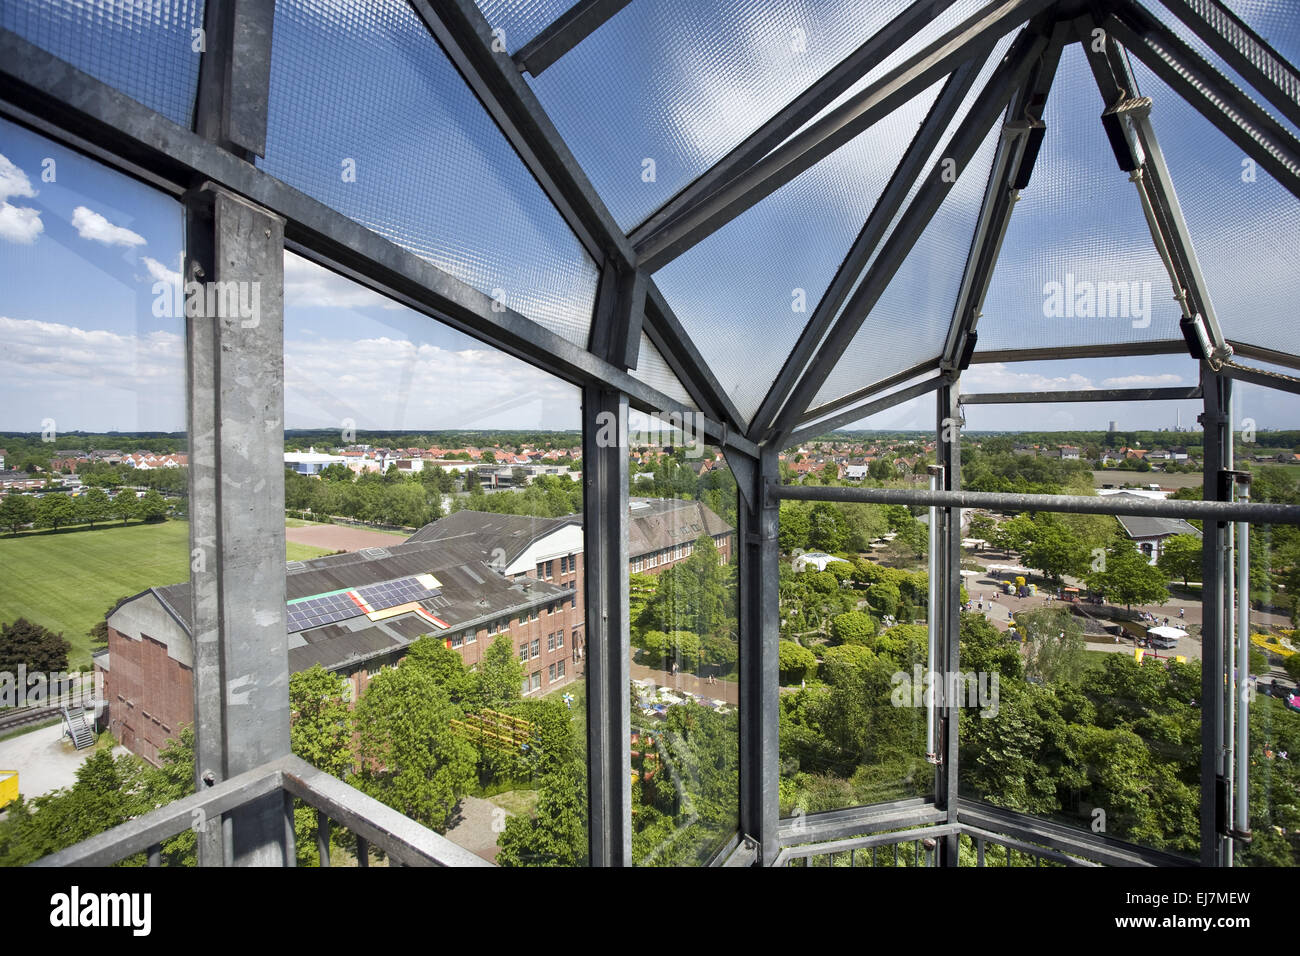 View from the glass elephant, Hamm, Germany - Stock Image